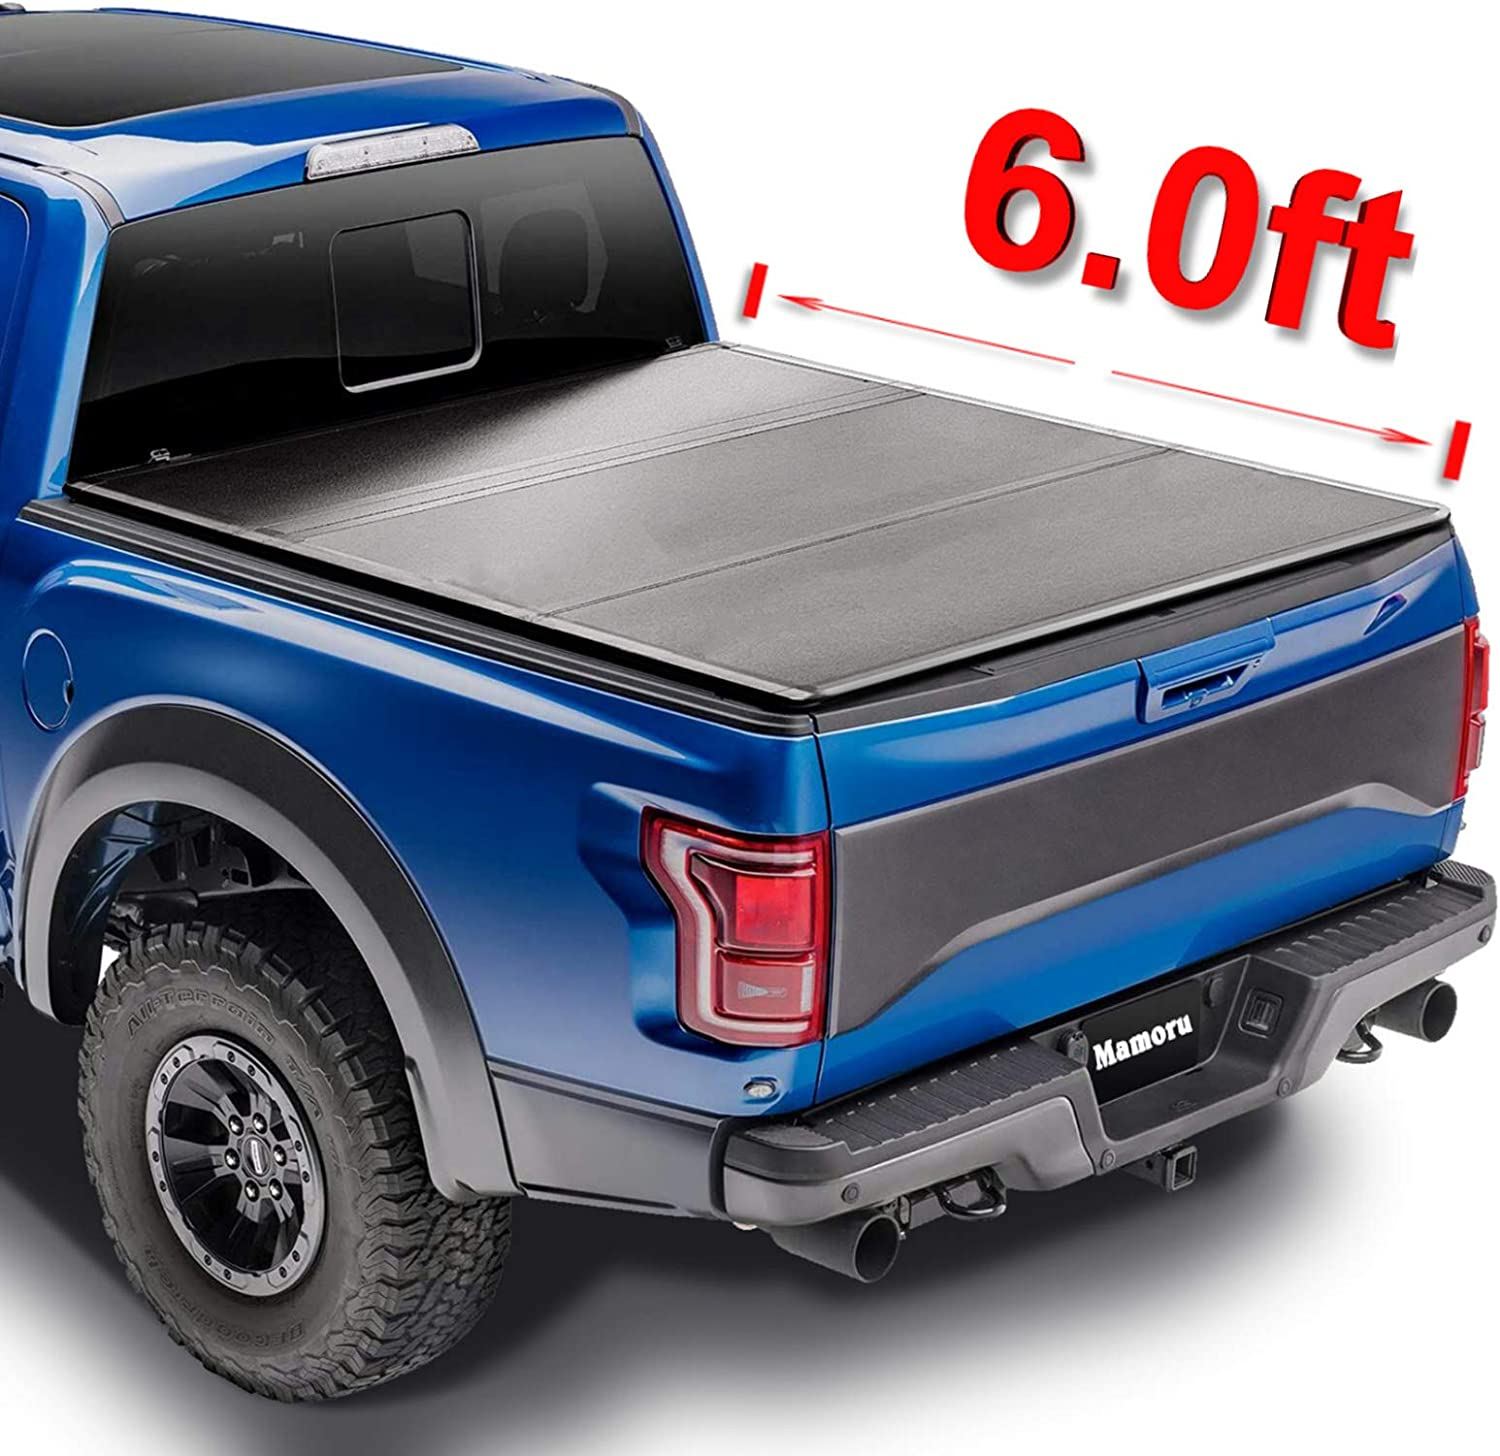 Mamoru Free shipping Hard sale Tri-Fold 6ft Truck Bed Ford Cover For 2019-2021 Rang